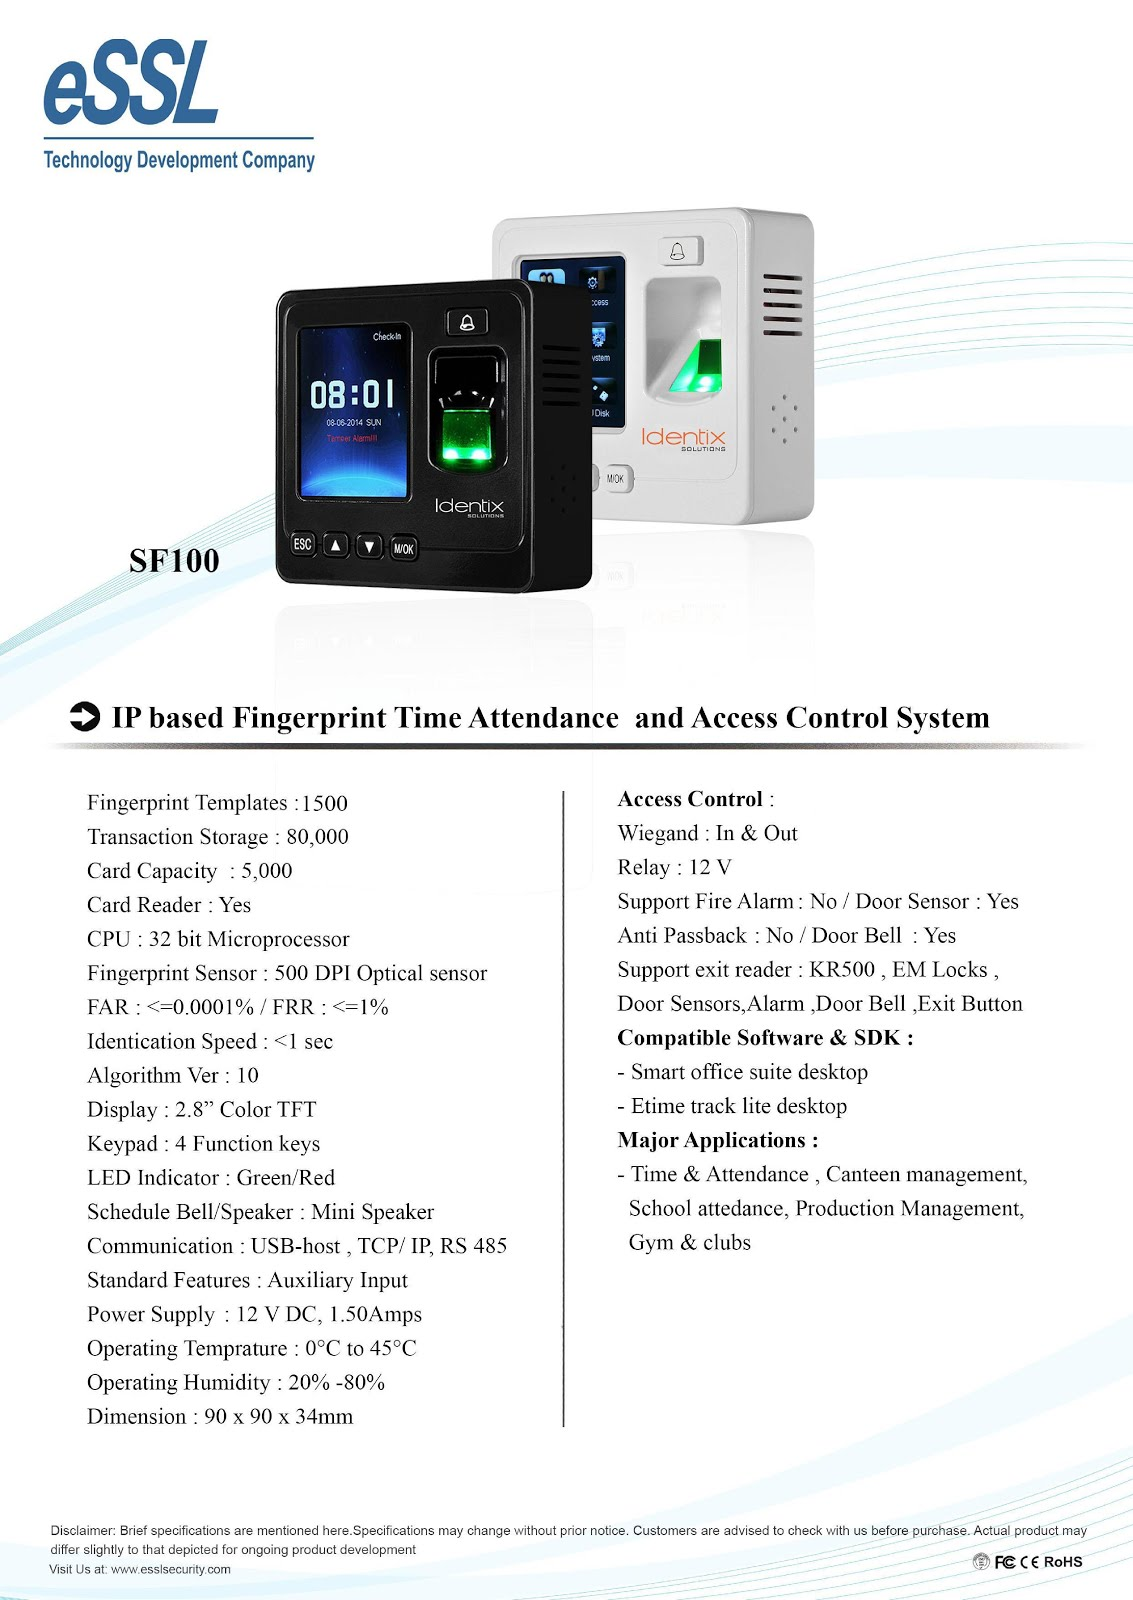 eSSL Security & Biometric Products : SF100